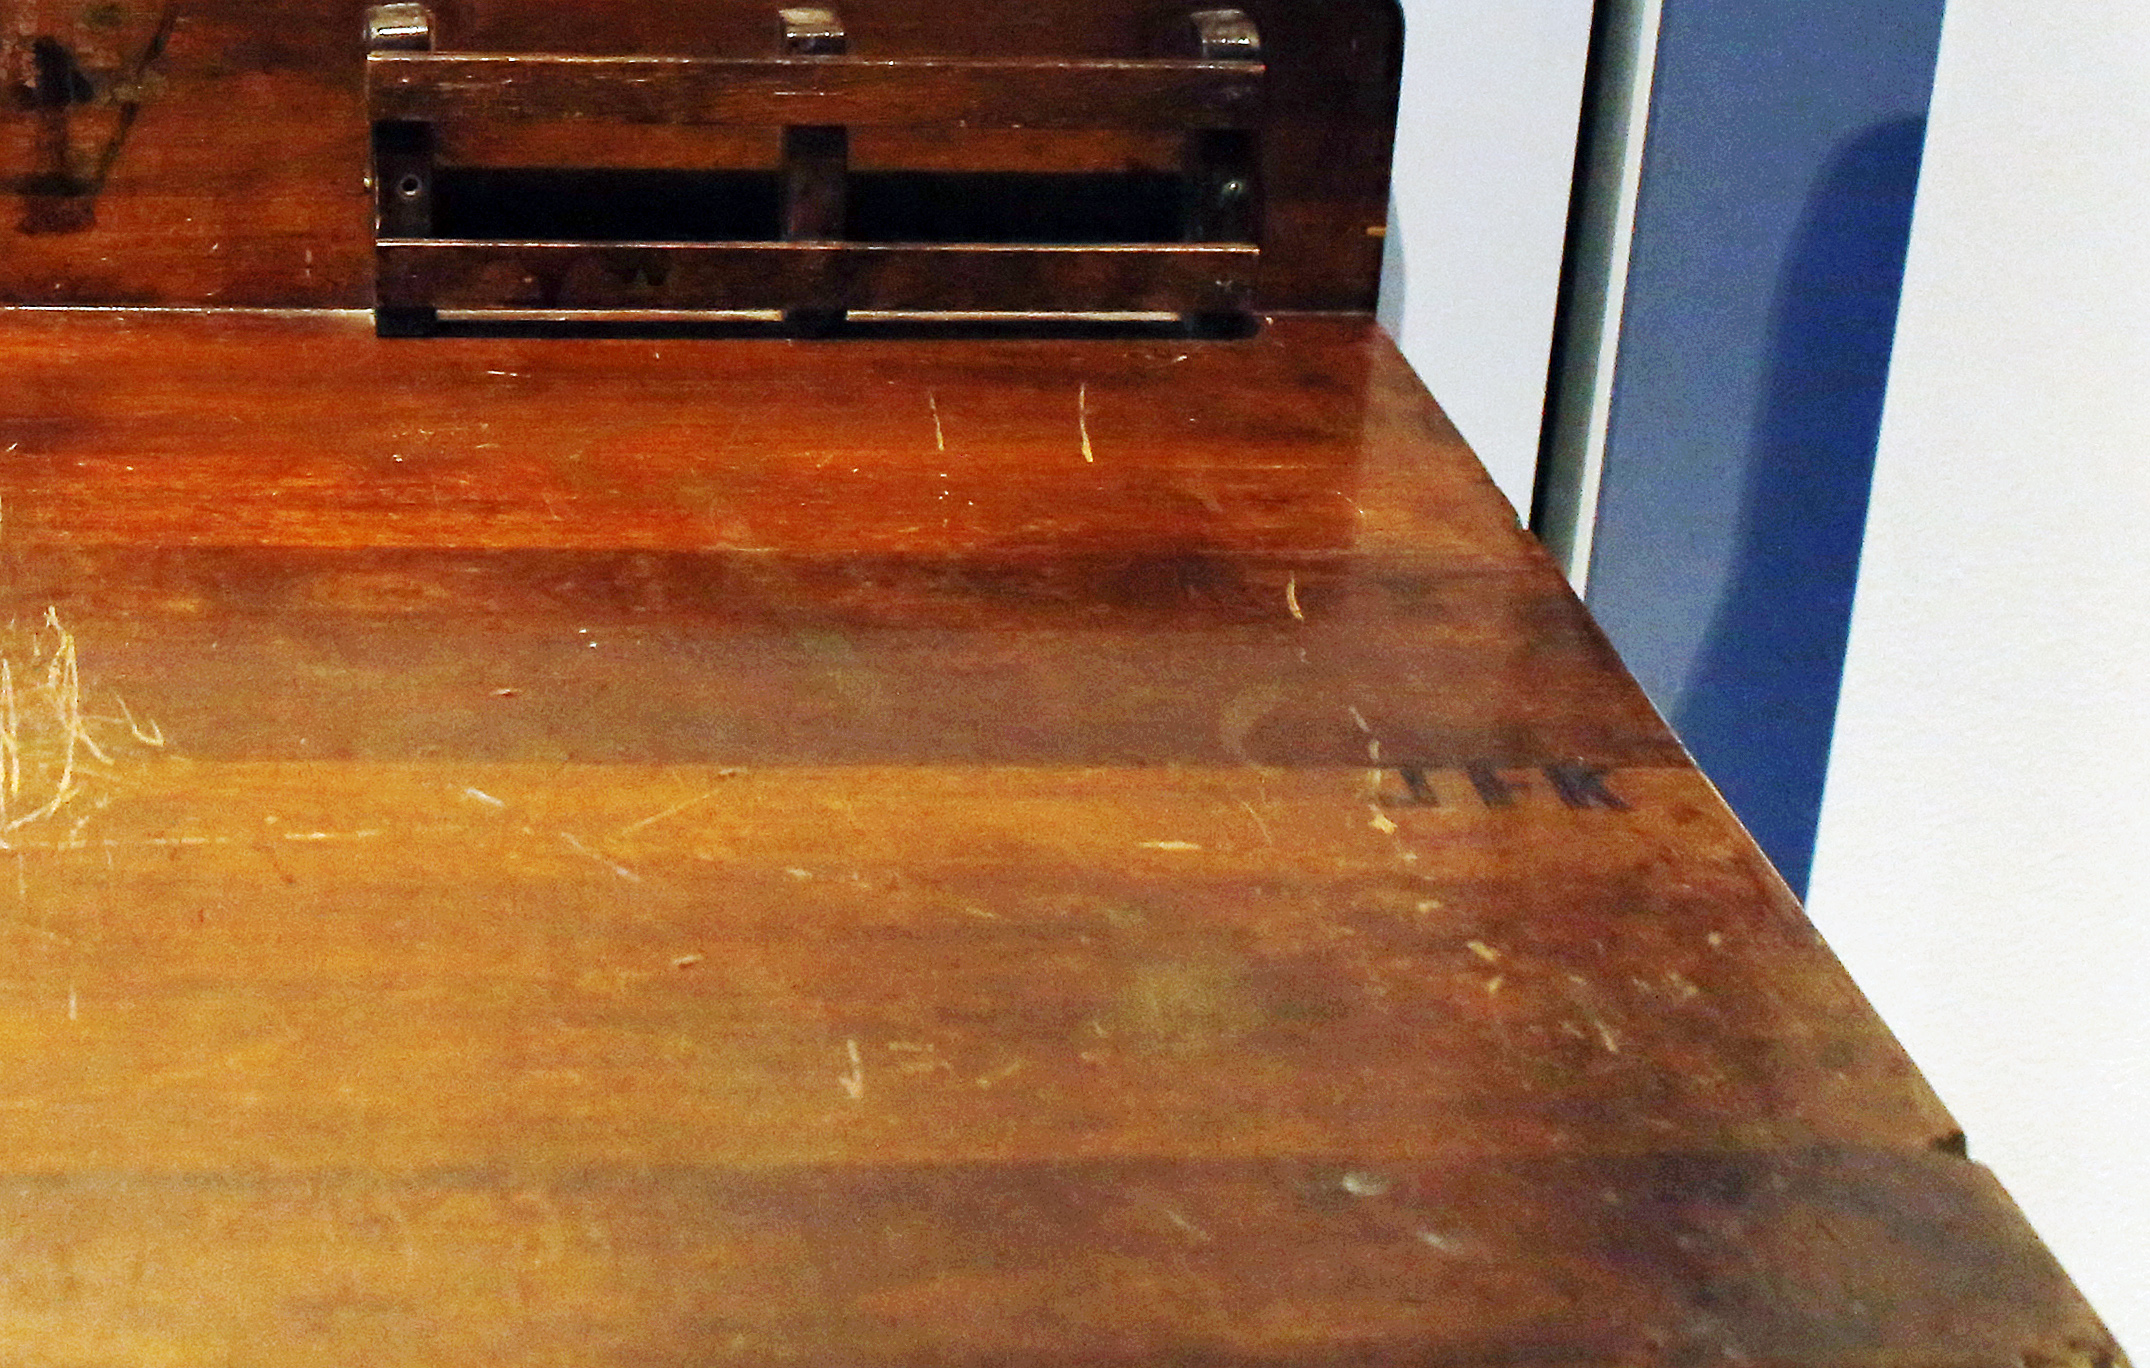 Too good to be true: Desk carved with 'JFK' isn't Kennedy's